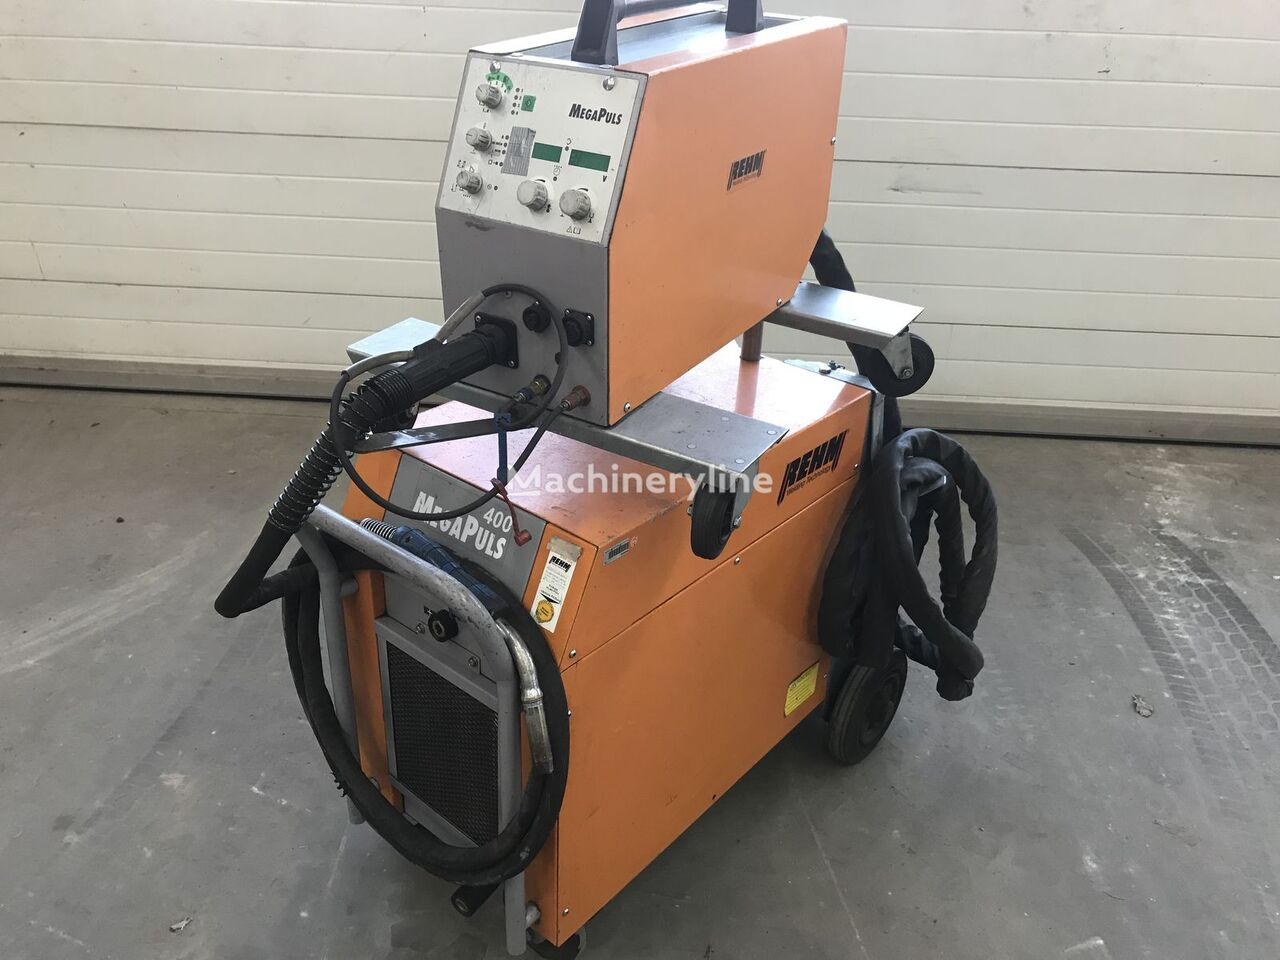 ONBEKEND Rehm Megapuls 400 welding equipment